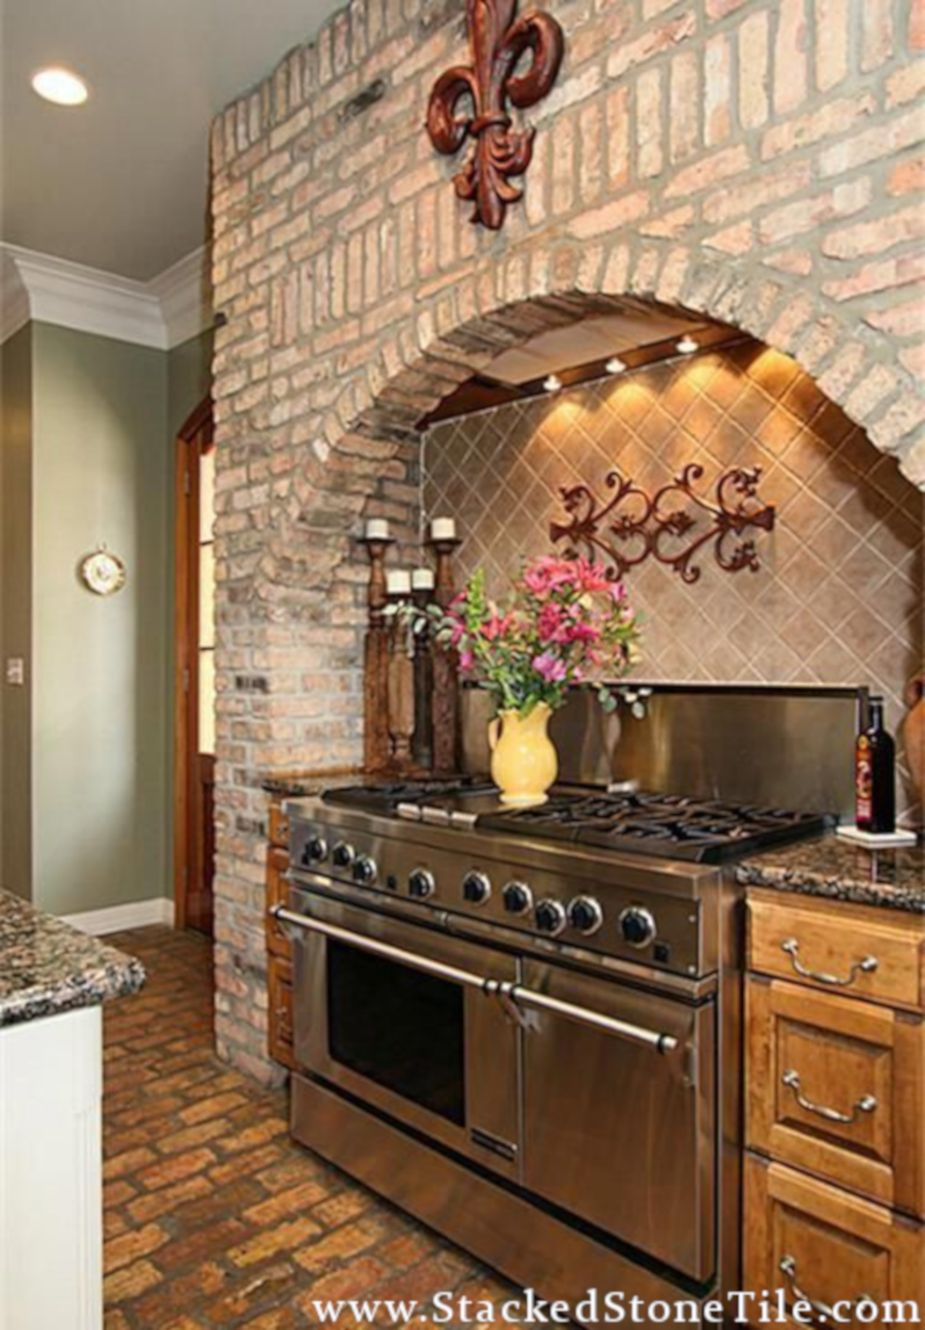 Kitchen Backsplash Kitchen Kitchen Tiles Design Stacked Stone